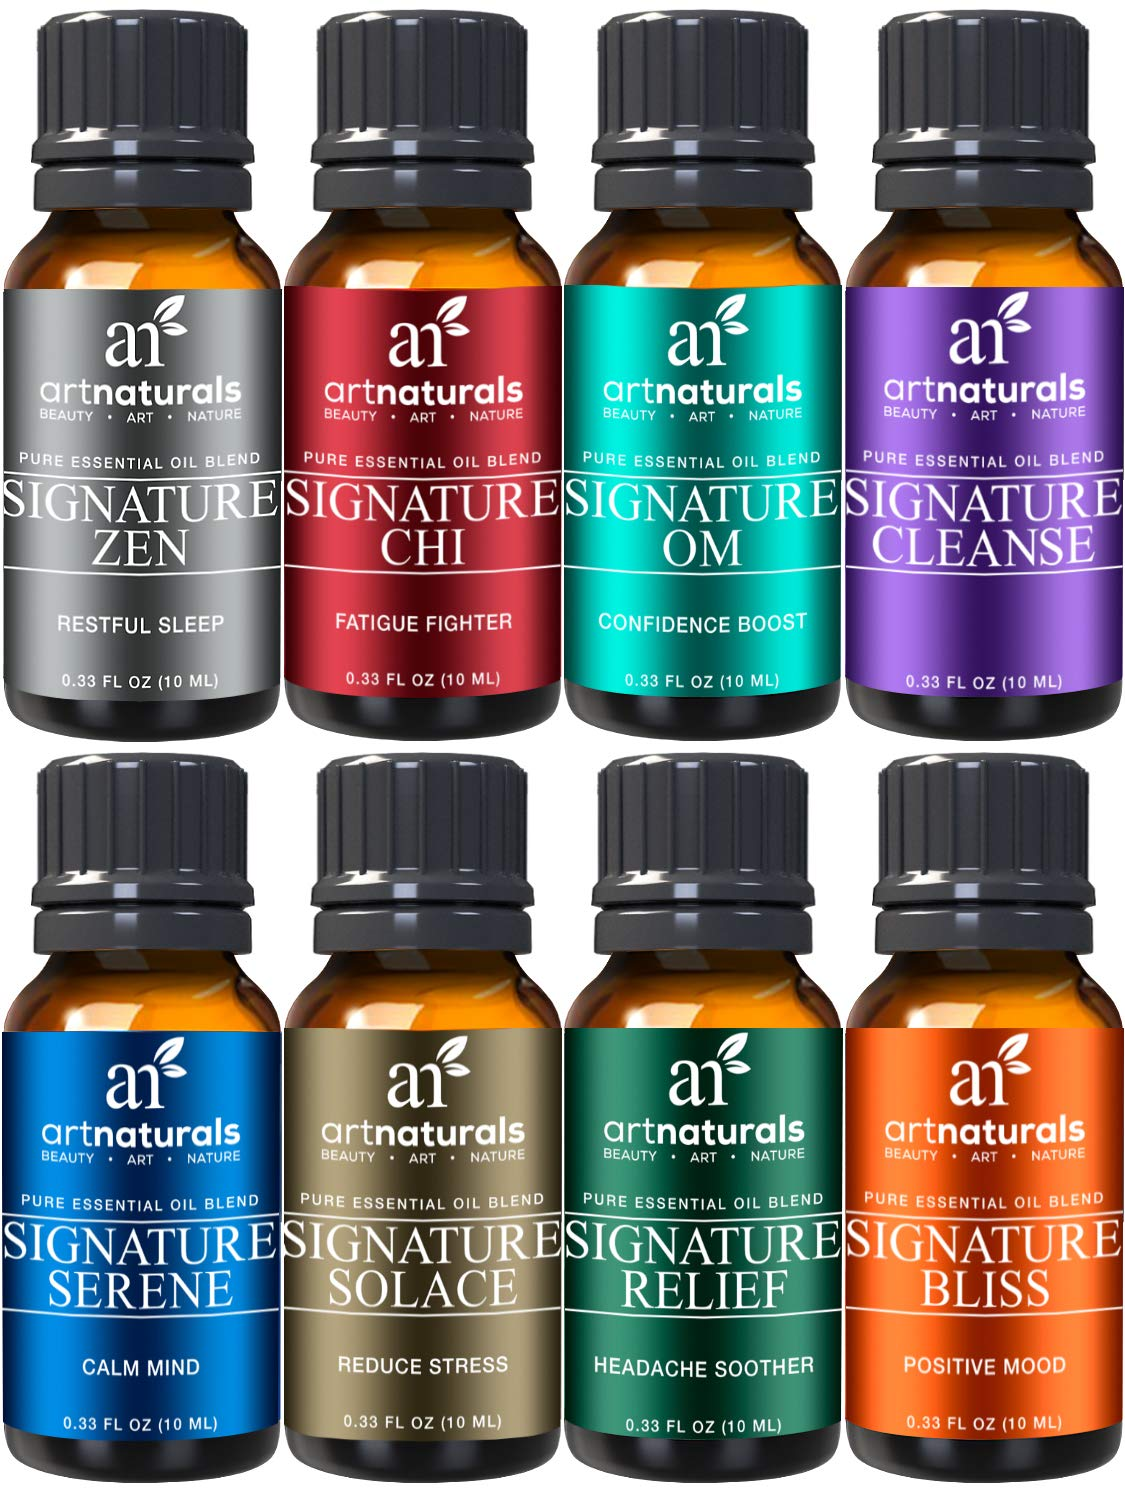 ArtNaturals Signature Blend Essential Oils Set - (8 x 10ml) - 100% Pure of The Highest Quality - Therapeutic Grade - Recommended Aromatherapy Gift Set by ArtNaturals